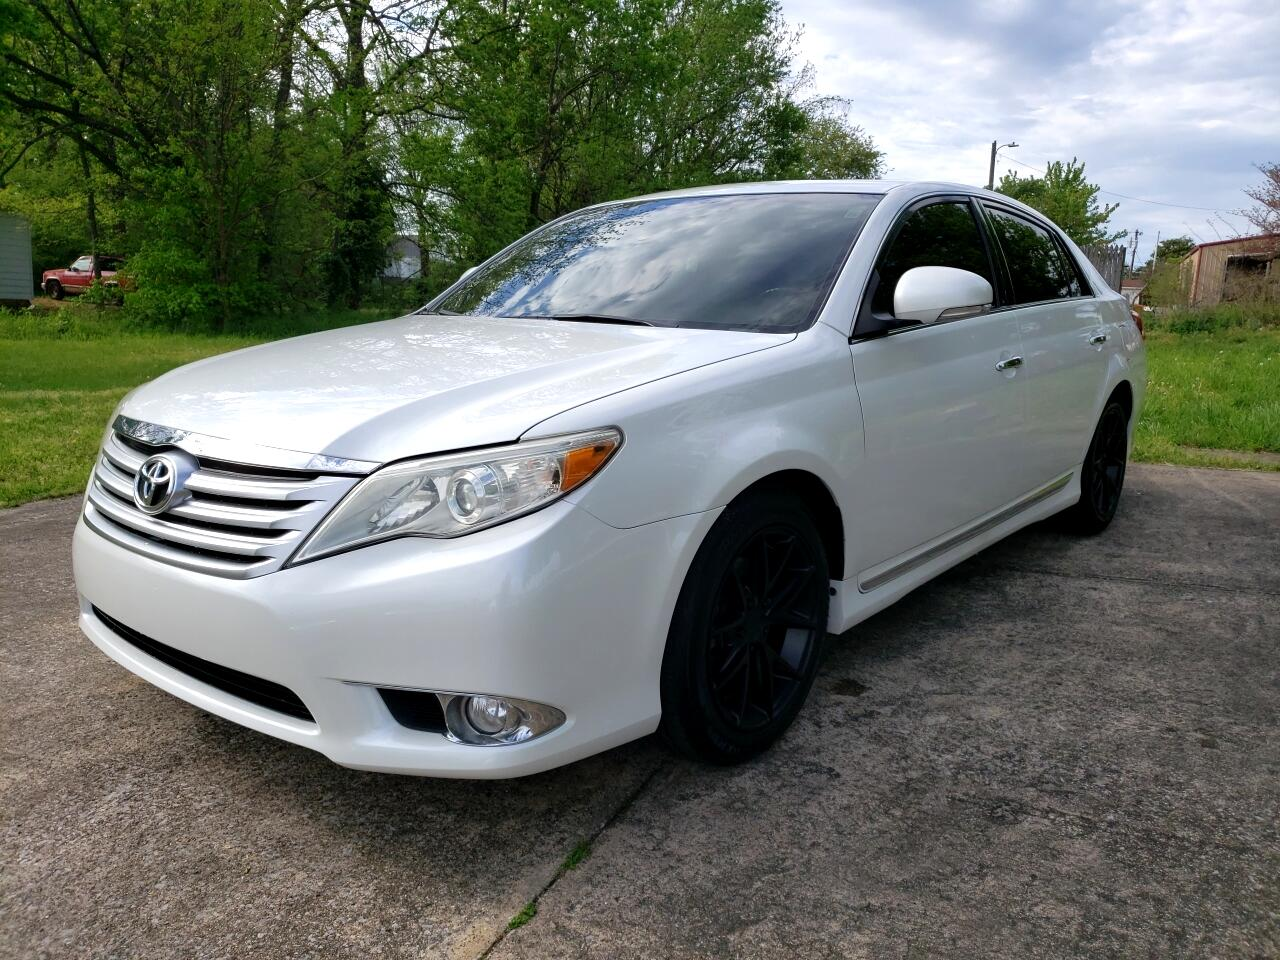 2011 Toyota Avalon 4dr Sdn Touring (Natl)